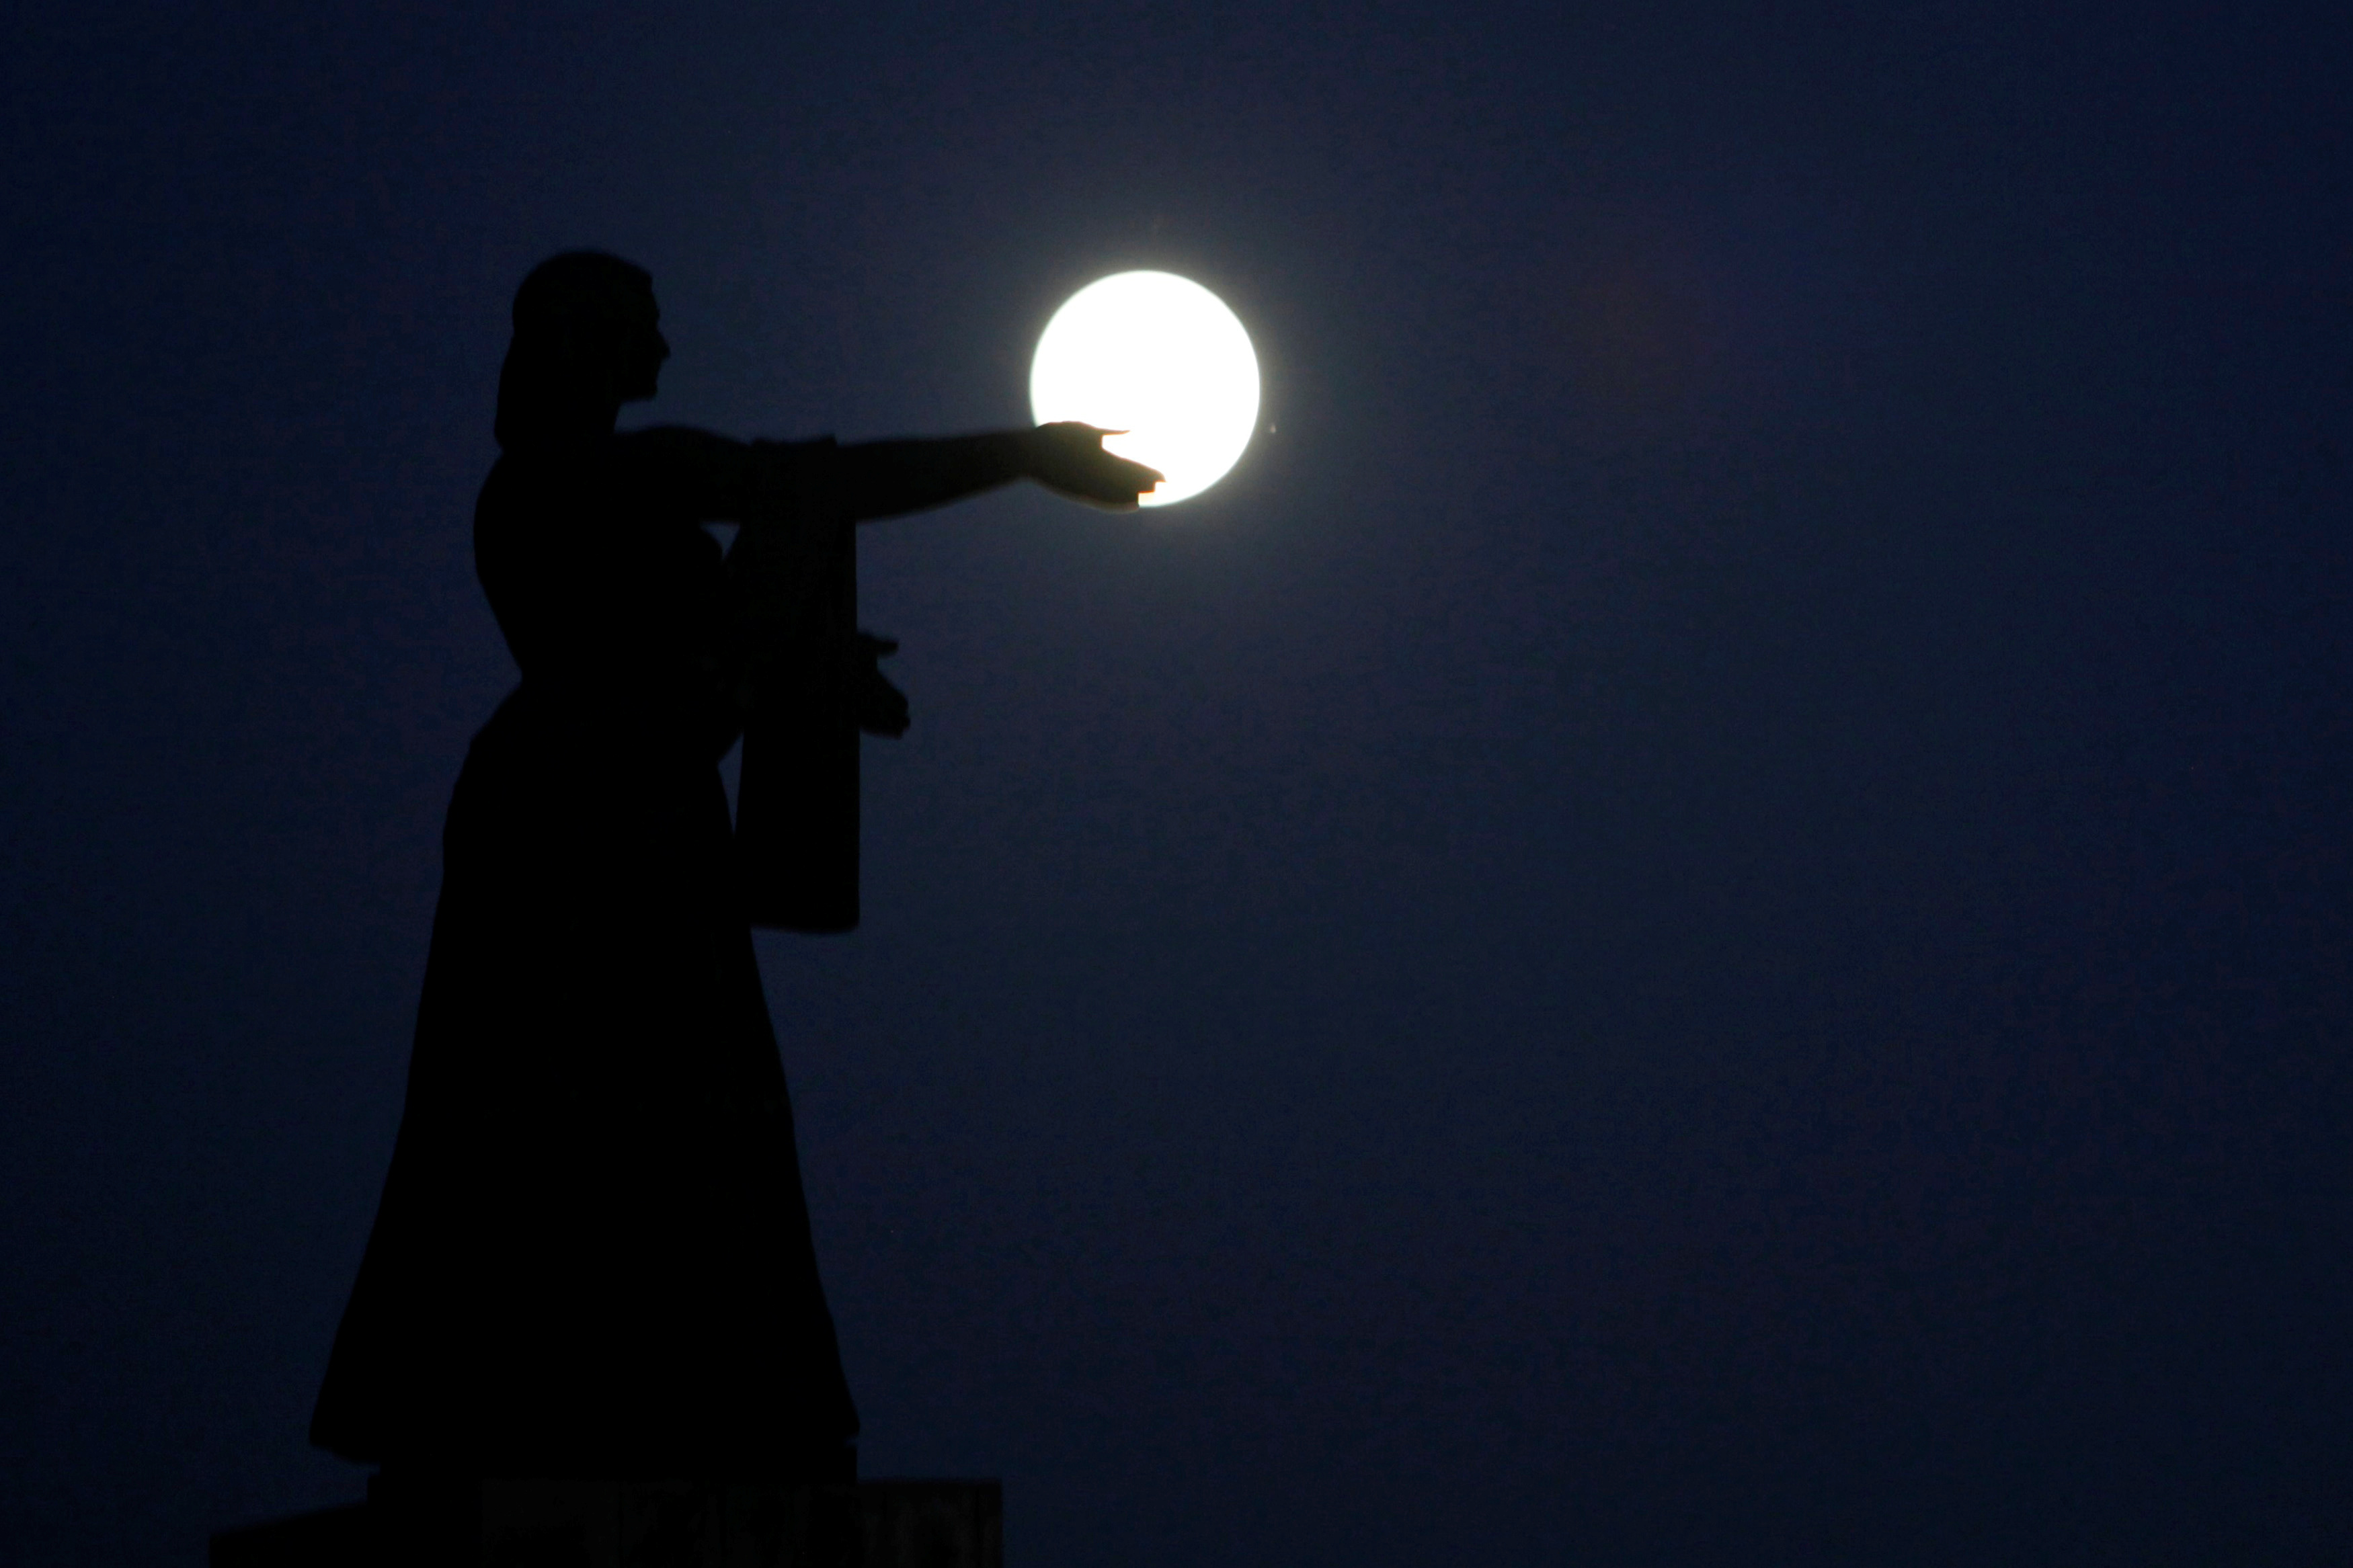 The supermoon, the closest the full moon has come to Earth since 1948, rises over La Raza monument in Ciudad Juarez, Mexico on Nov. 13. Photo by Jose Luis Gonzalez/Reuters